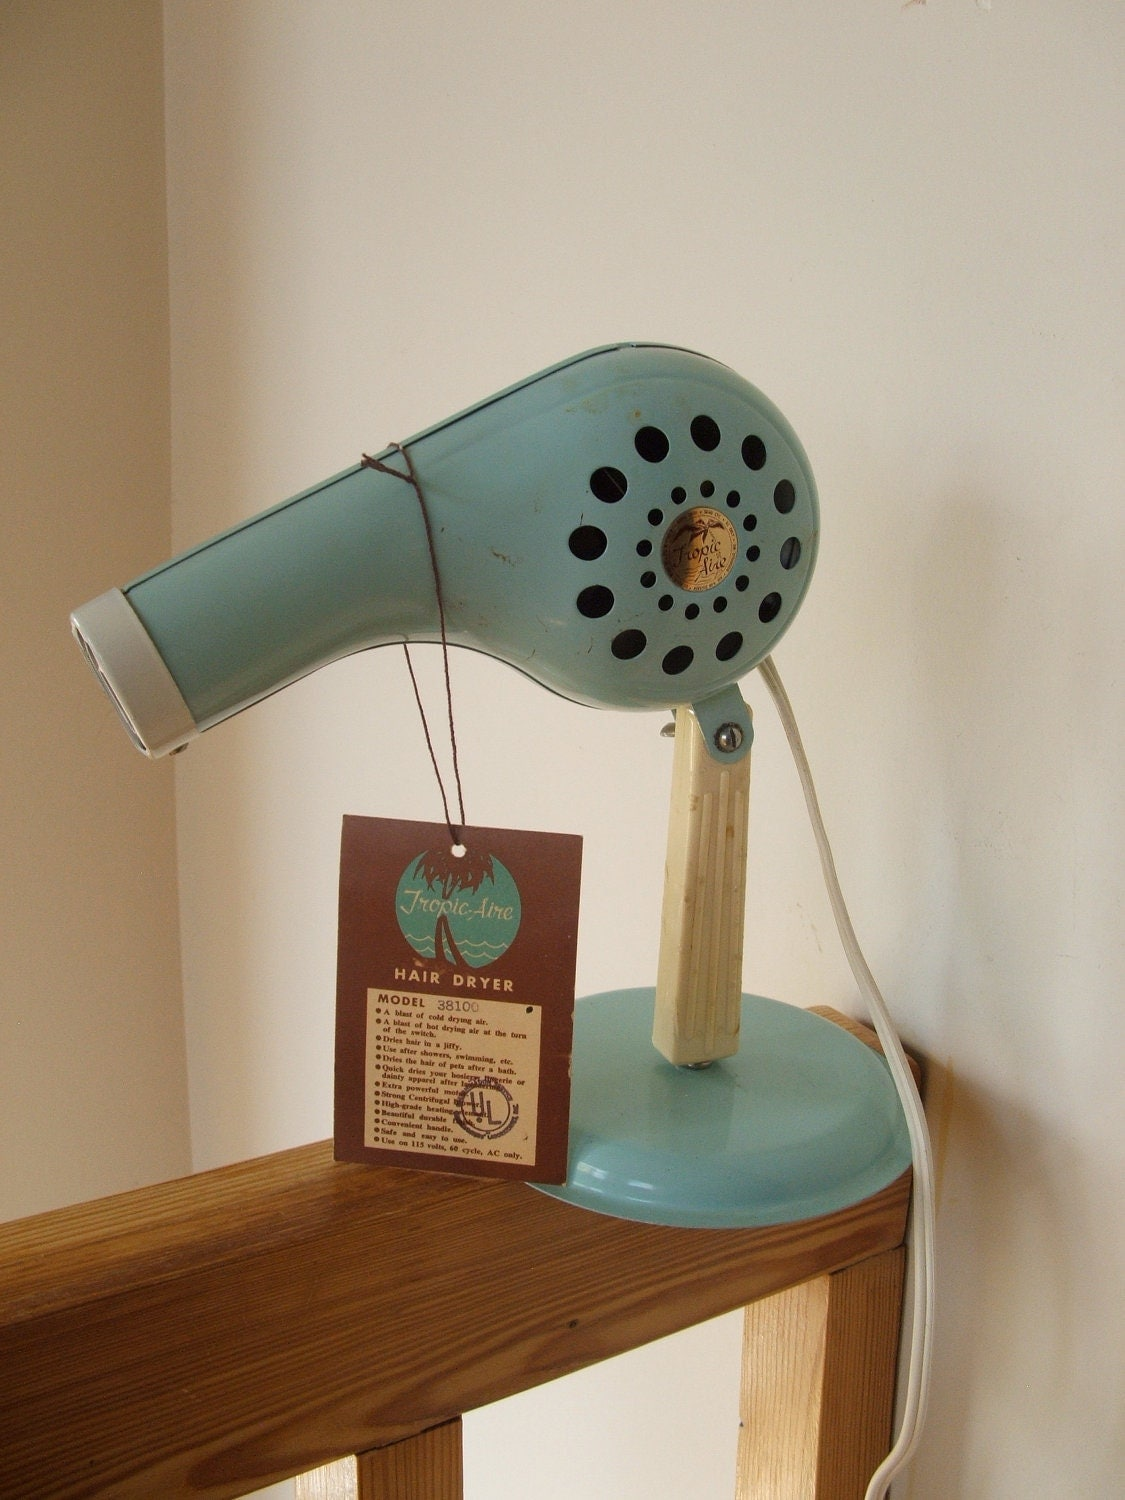 Vintage Tropic Aire Hair Dryer In Original By